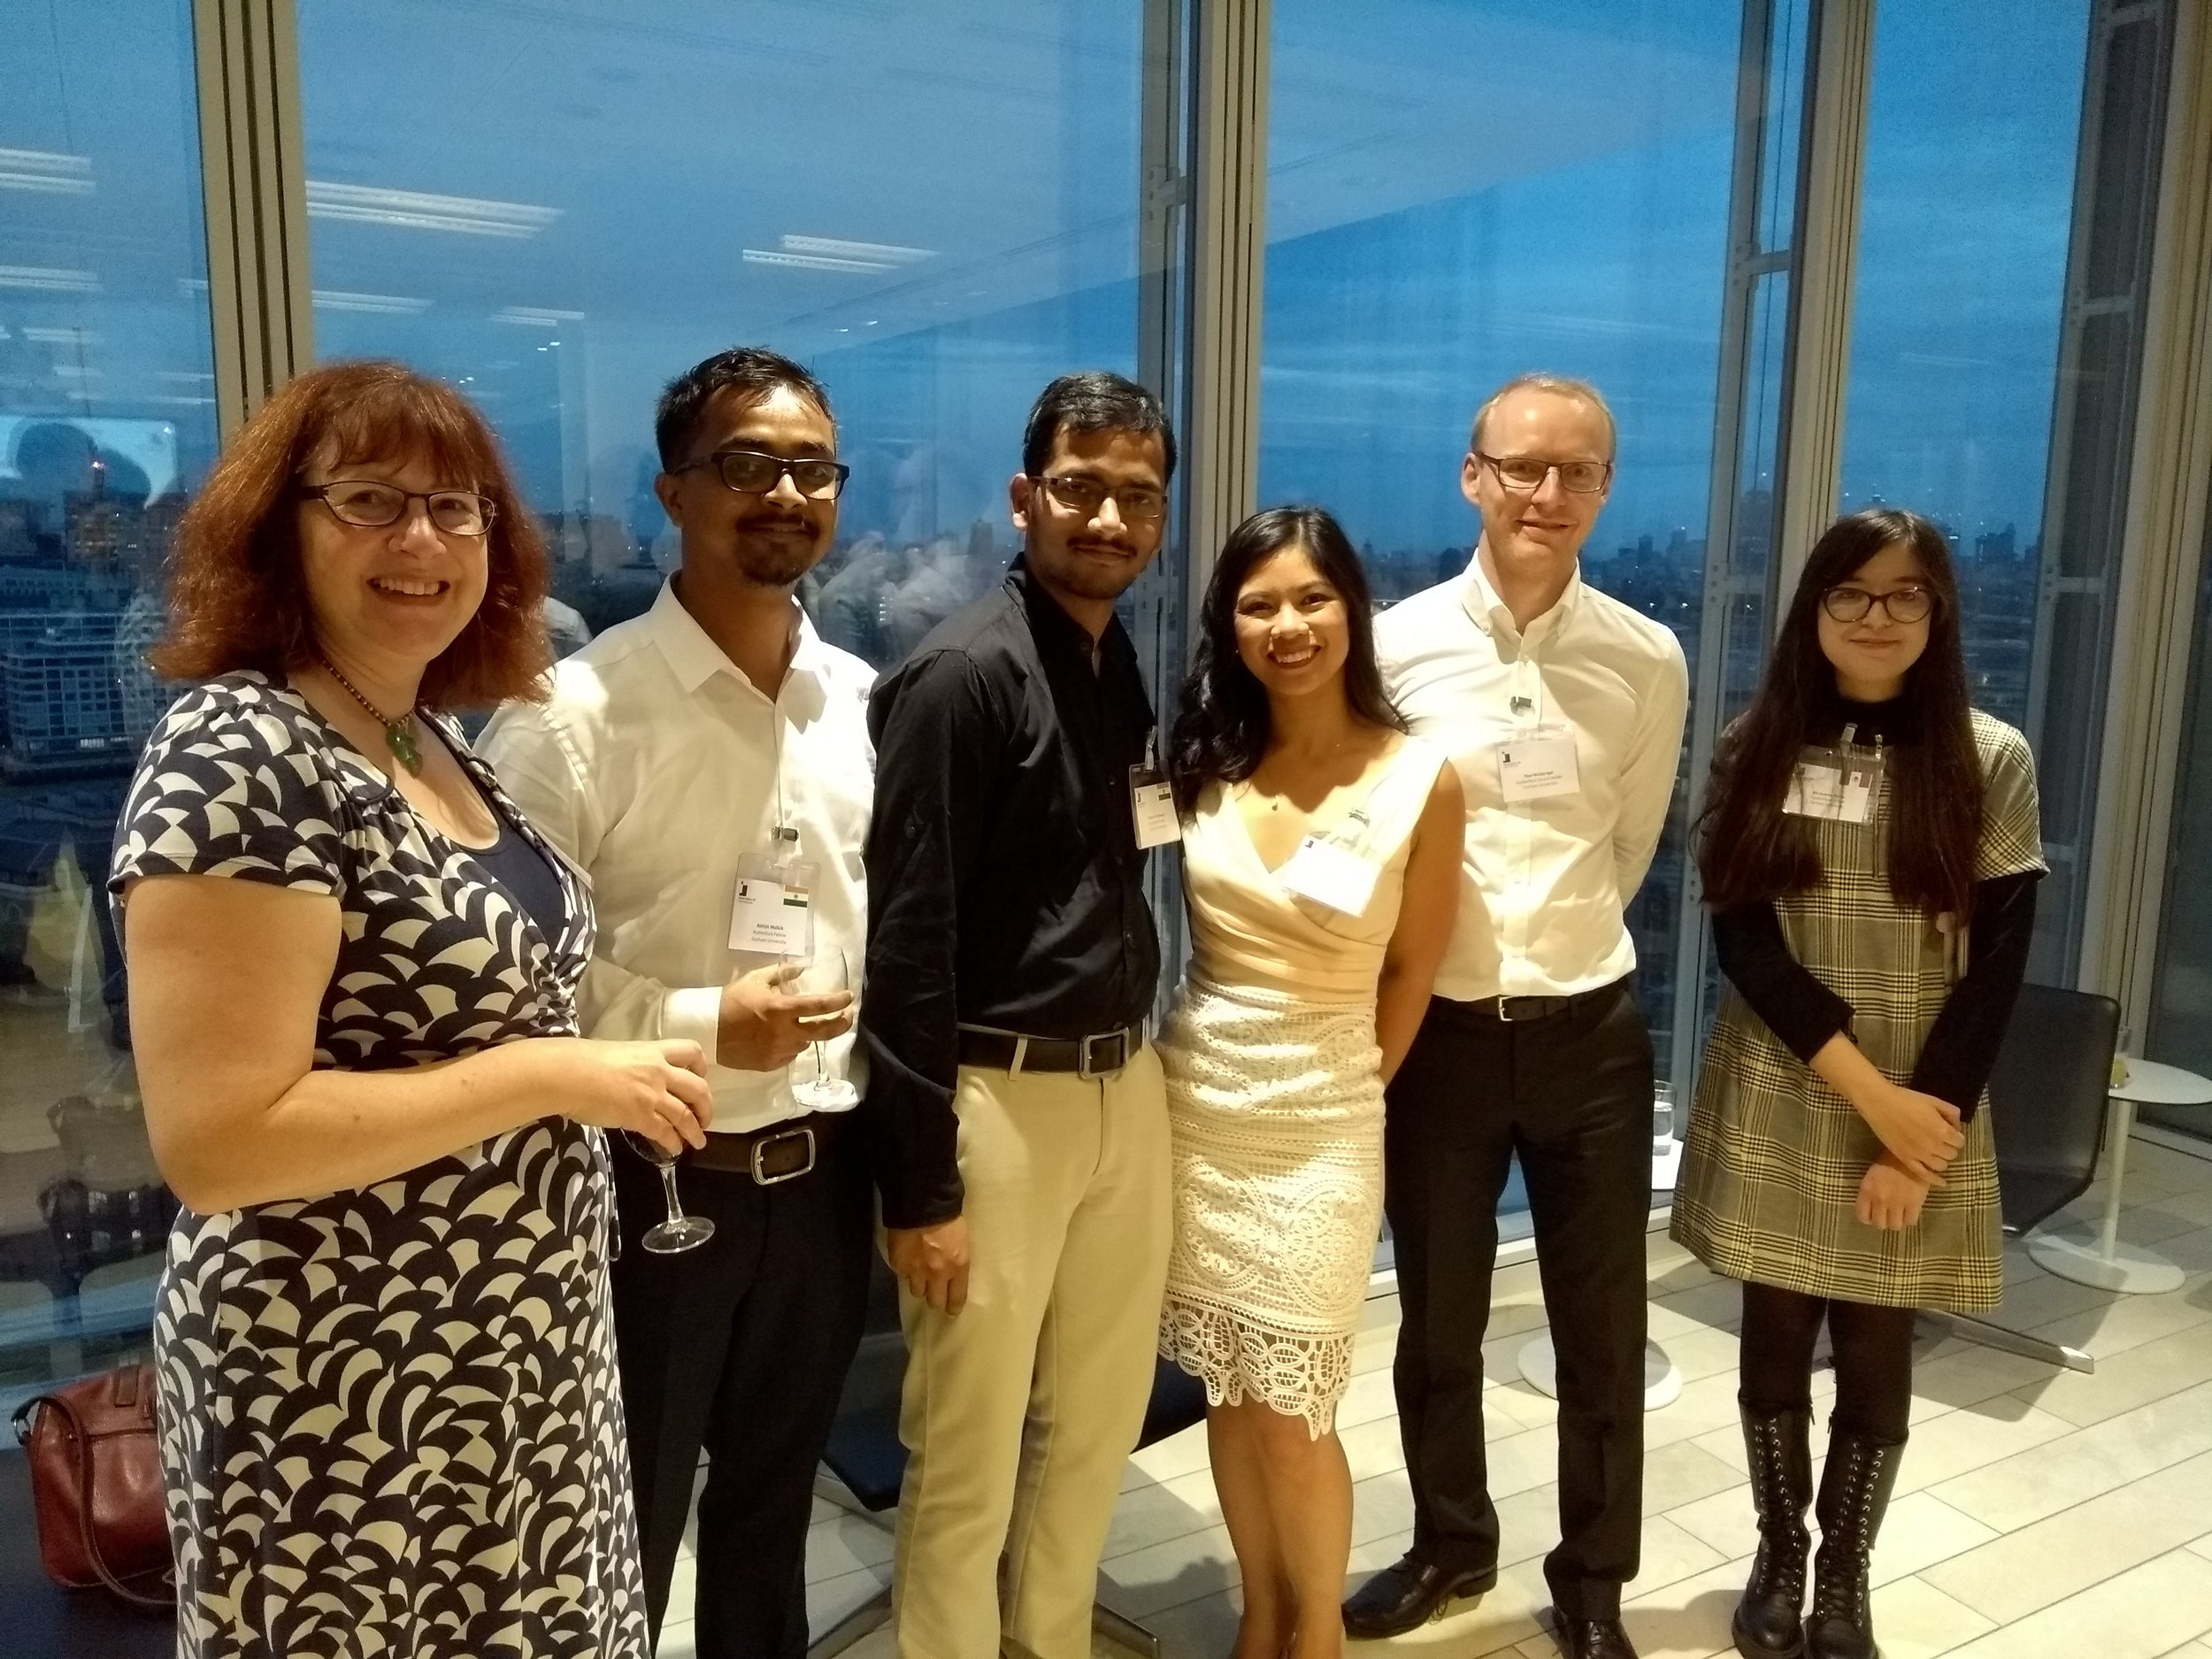 Durham's Rutherford Contingent at the UUKi Rutherford Reception in the Shard, London. l-r: Prof Claire Warwick (PVC Research), Dr Abhijit Mallick (Rutherford Fellow) Dr Pavan Yerramsetti (Rutherford Fellow), Dr Alyssa-Jennifer Avestro (Rutherford Award Holder), Dr Paul McGonigal (Rutherford Award Holder), Dr Ali Huerta-Flores (Rutherford Fellow)